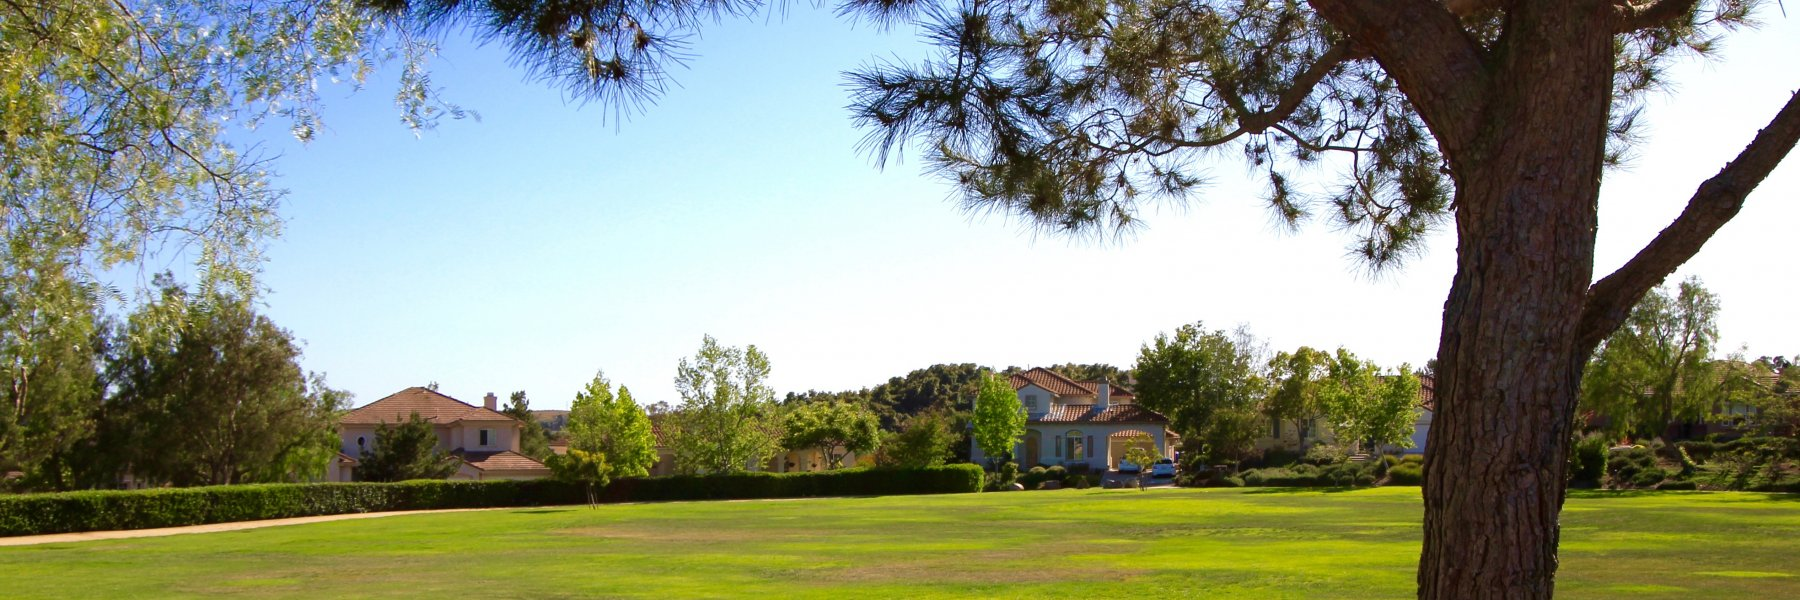 Peppertree Park is a community of homes in Fallbrook California